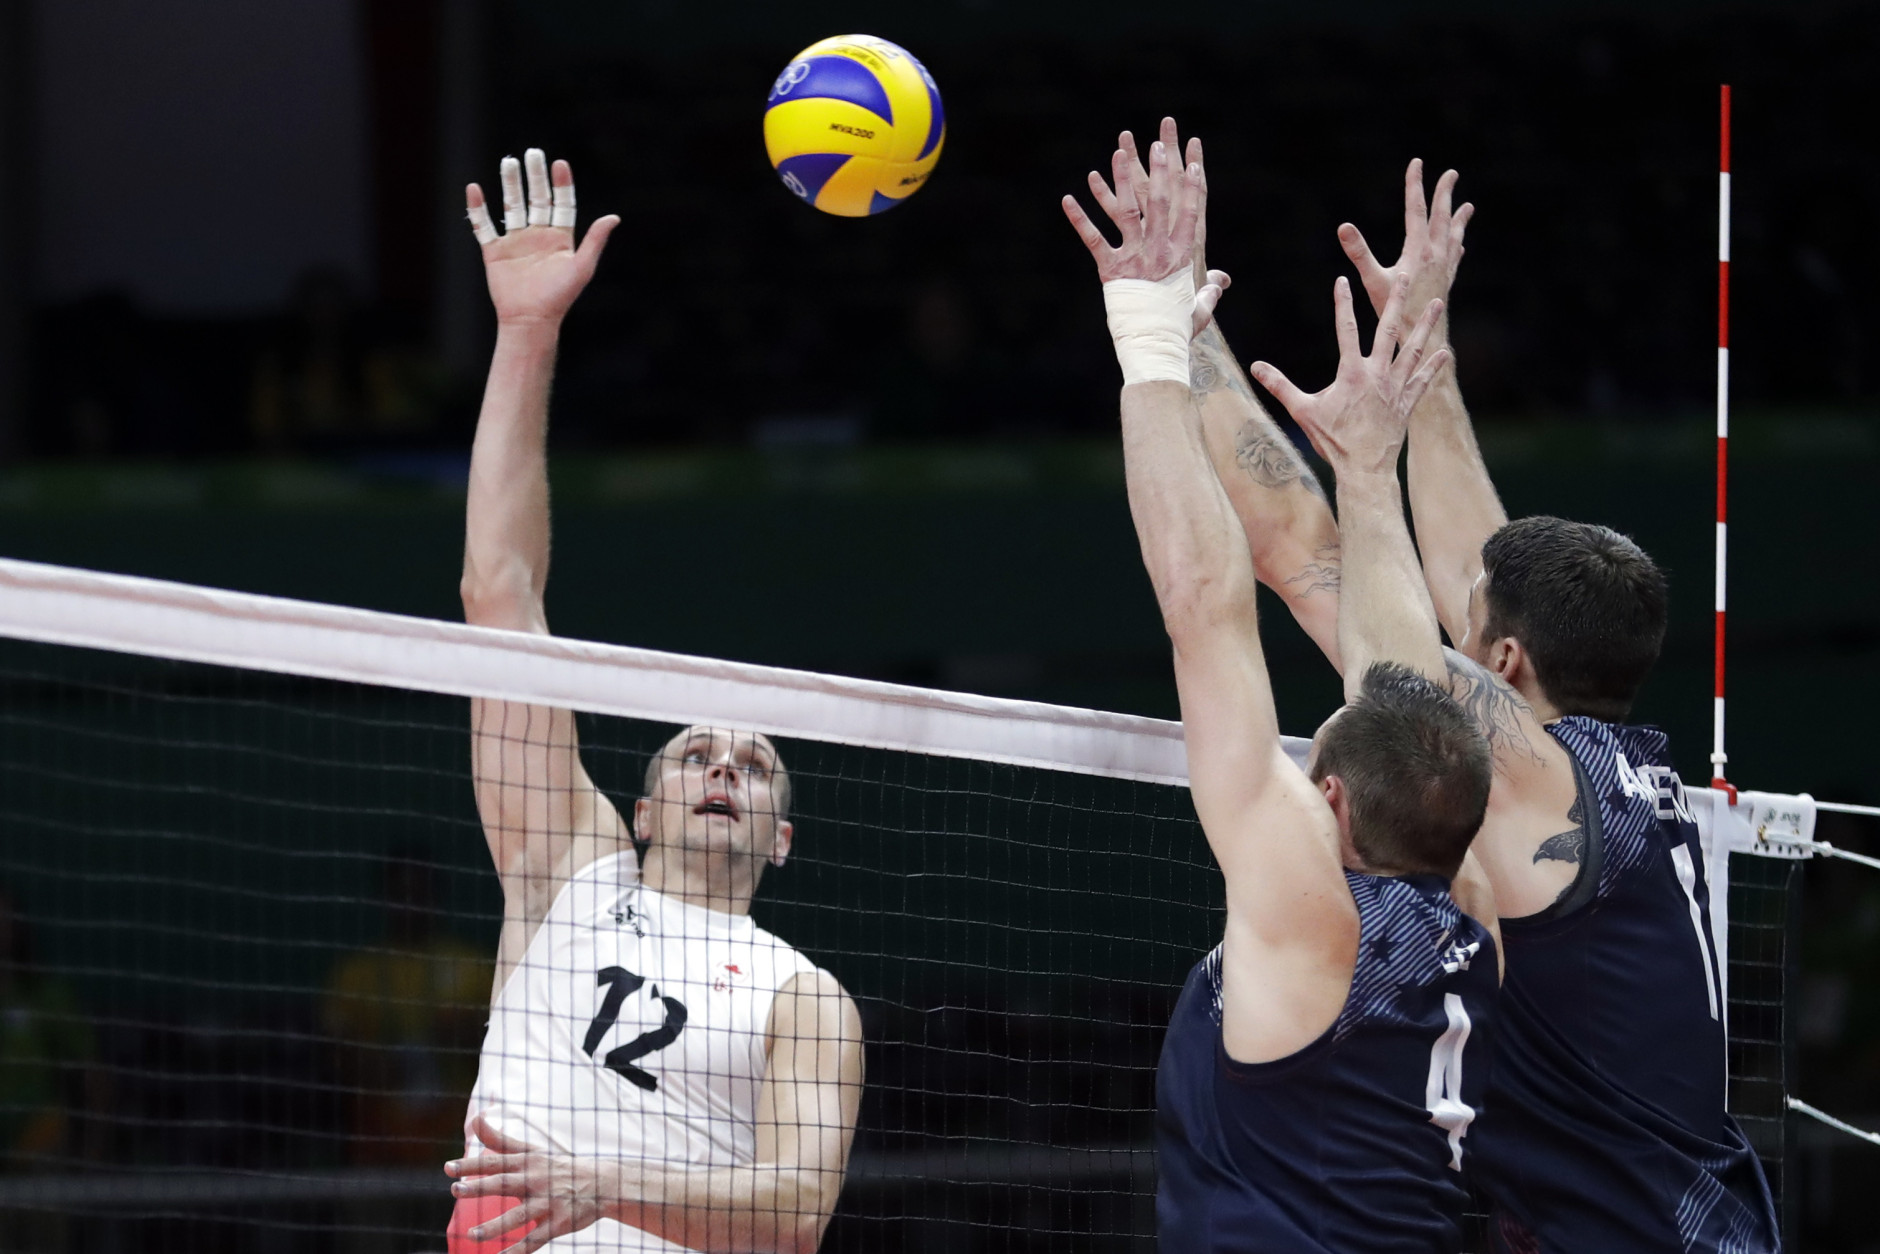 Canada's Gavin Schmitt (12) spikes the ball as United States' David Lee, center, and Matthew Anderson, right, attempt to block during a men's preliminary volleyball match at the 2016 Summer Olympics in Rio de Janeiro, Brazil, Sunday, Aug. 7, 2016. (AP Photo/Jeff Roberson)